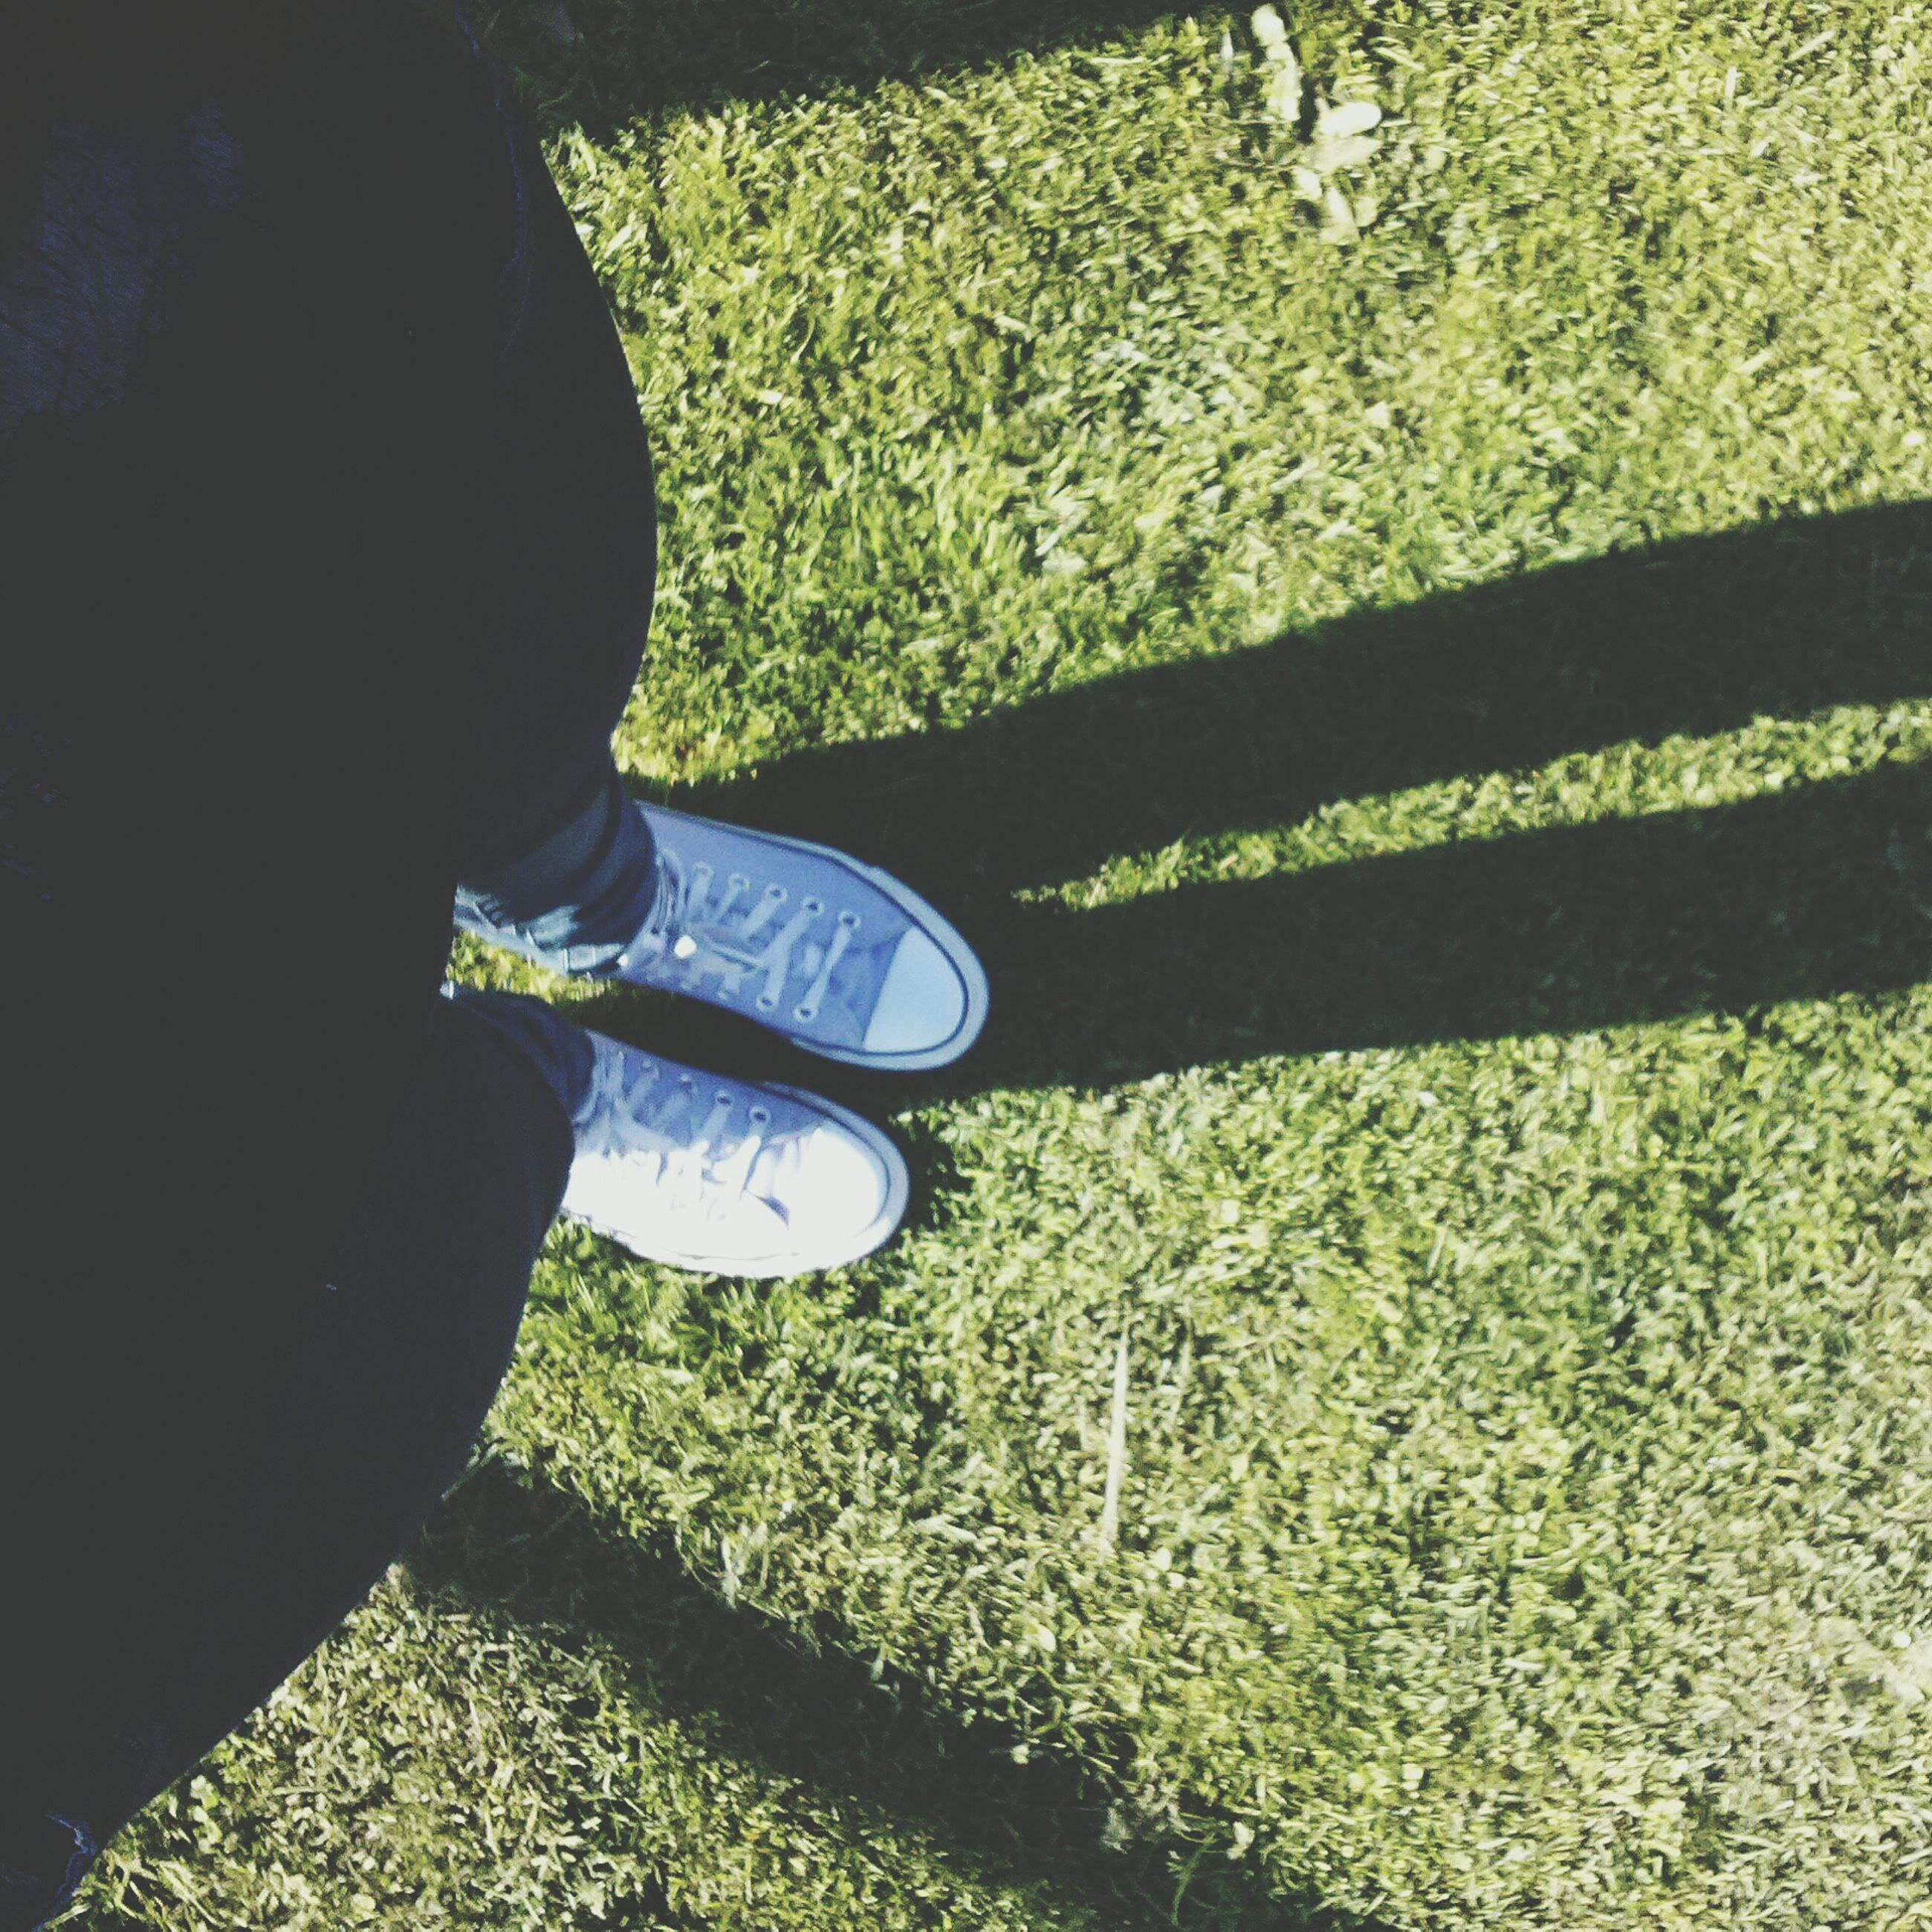 grass, lifestyles, low section, leisure activity, person, high angle view, shoe, men, field, standing, casual clothing, grassy, green color, sunlight, shadow, footwear, day, outdoors